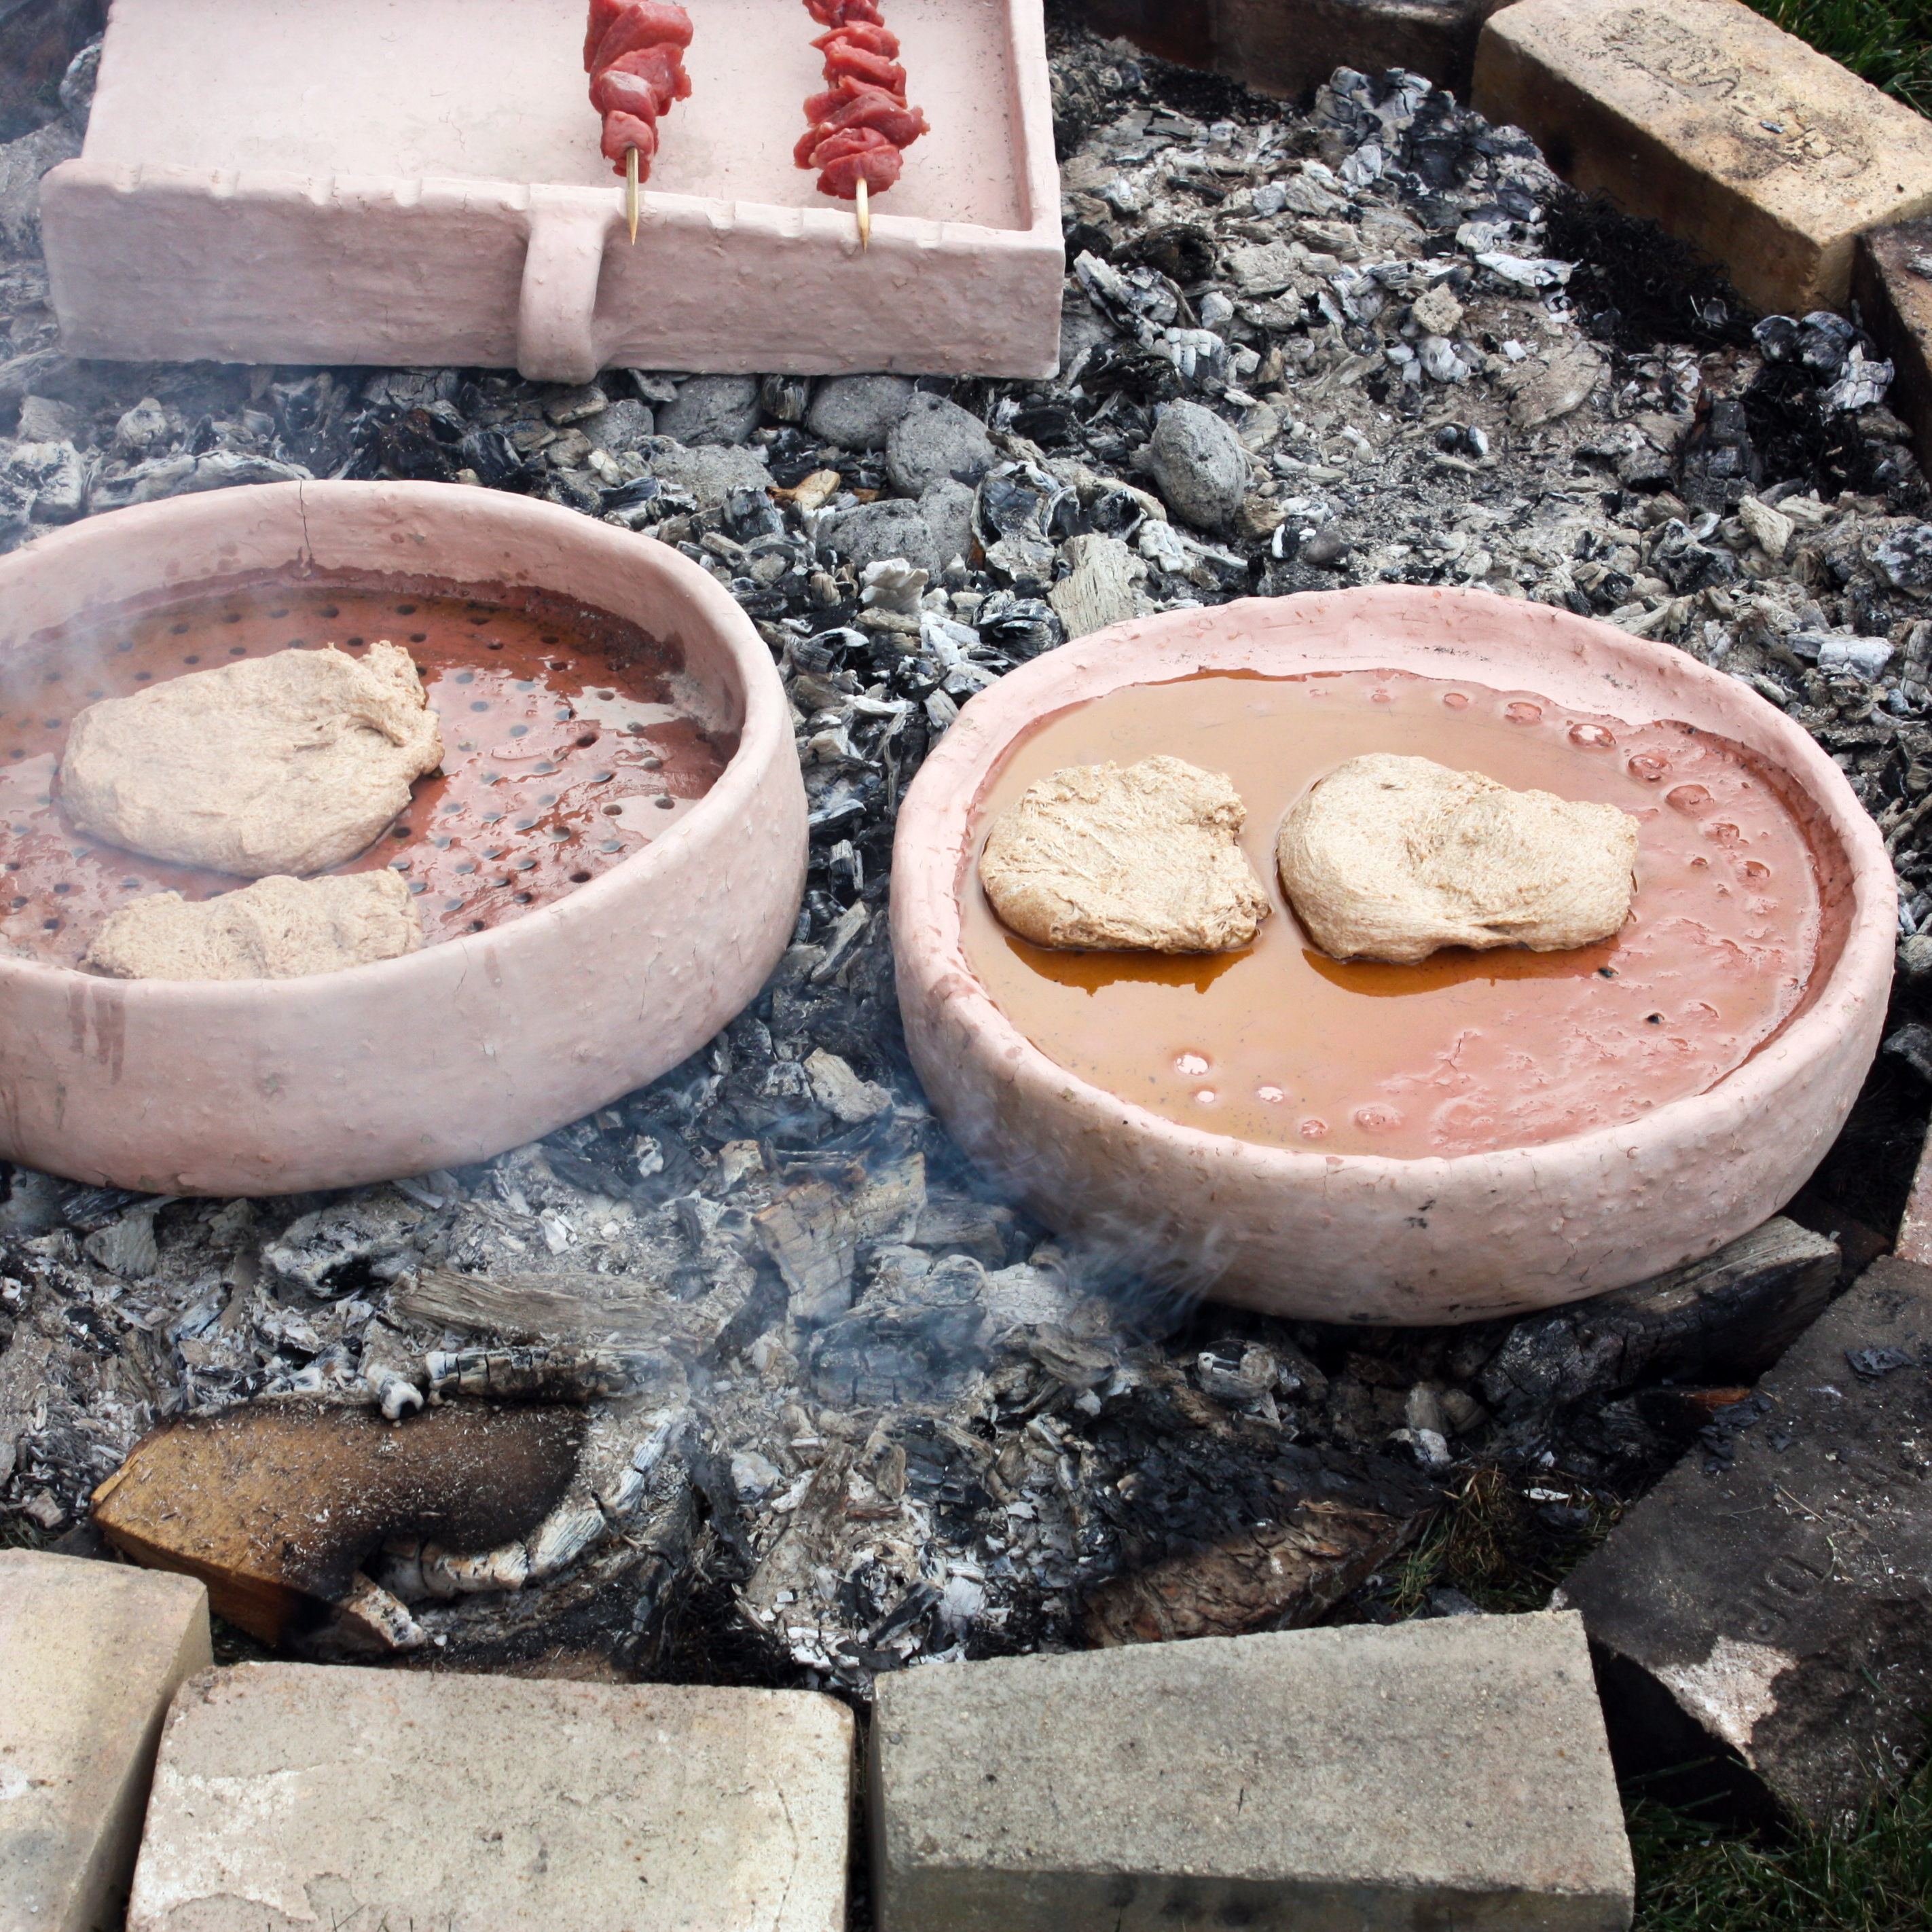 A replica of a perforated griddle is filled with dough to demonstrate how the ancient Greeks made bread.